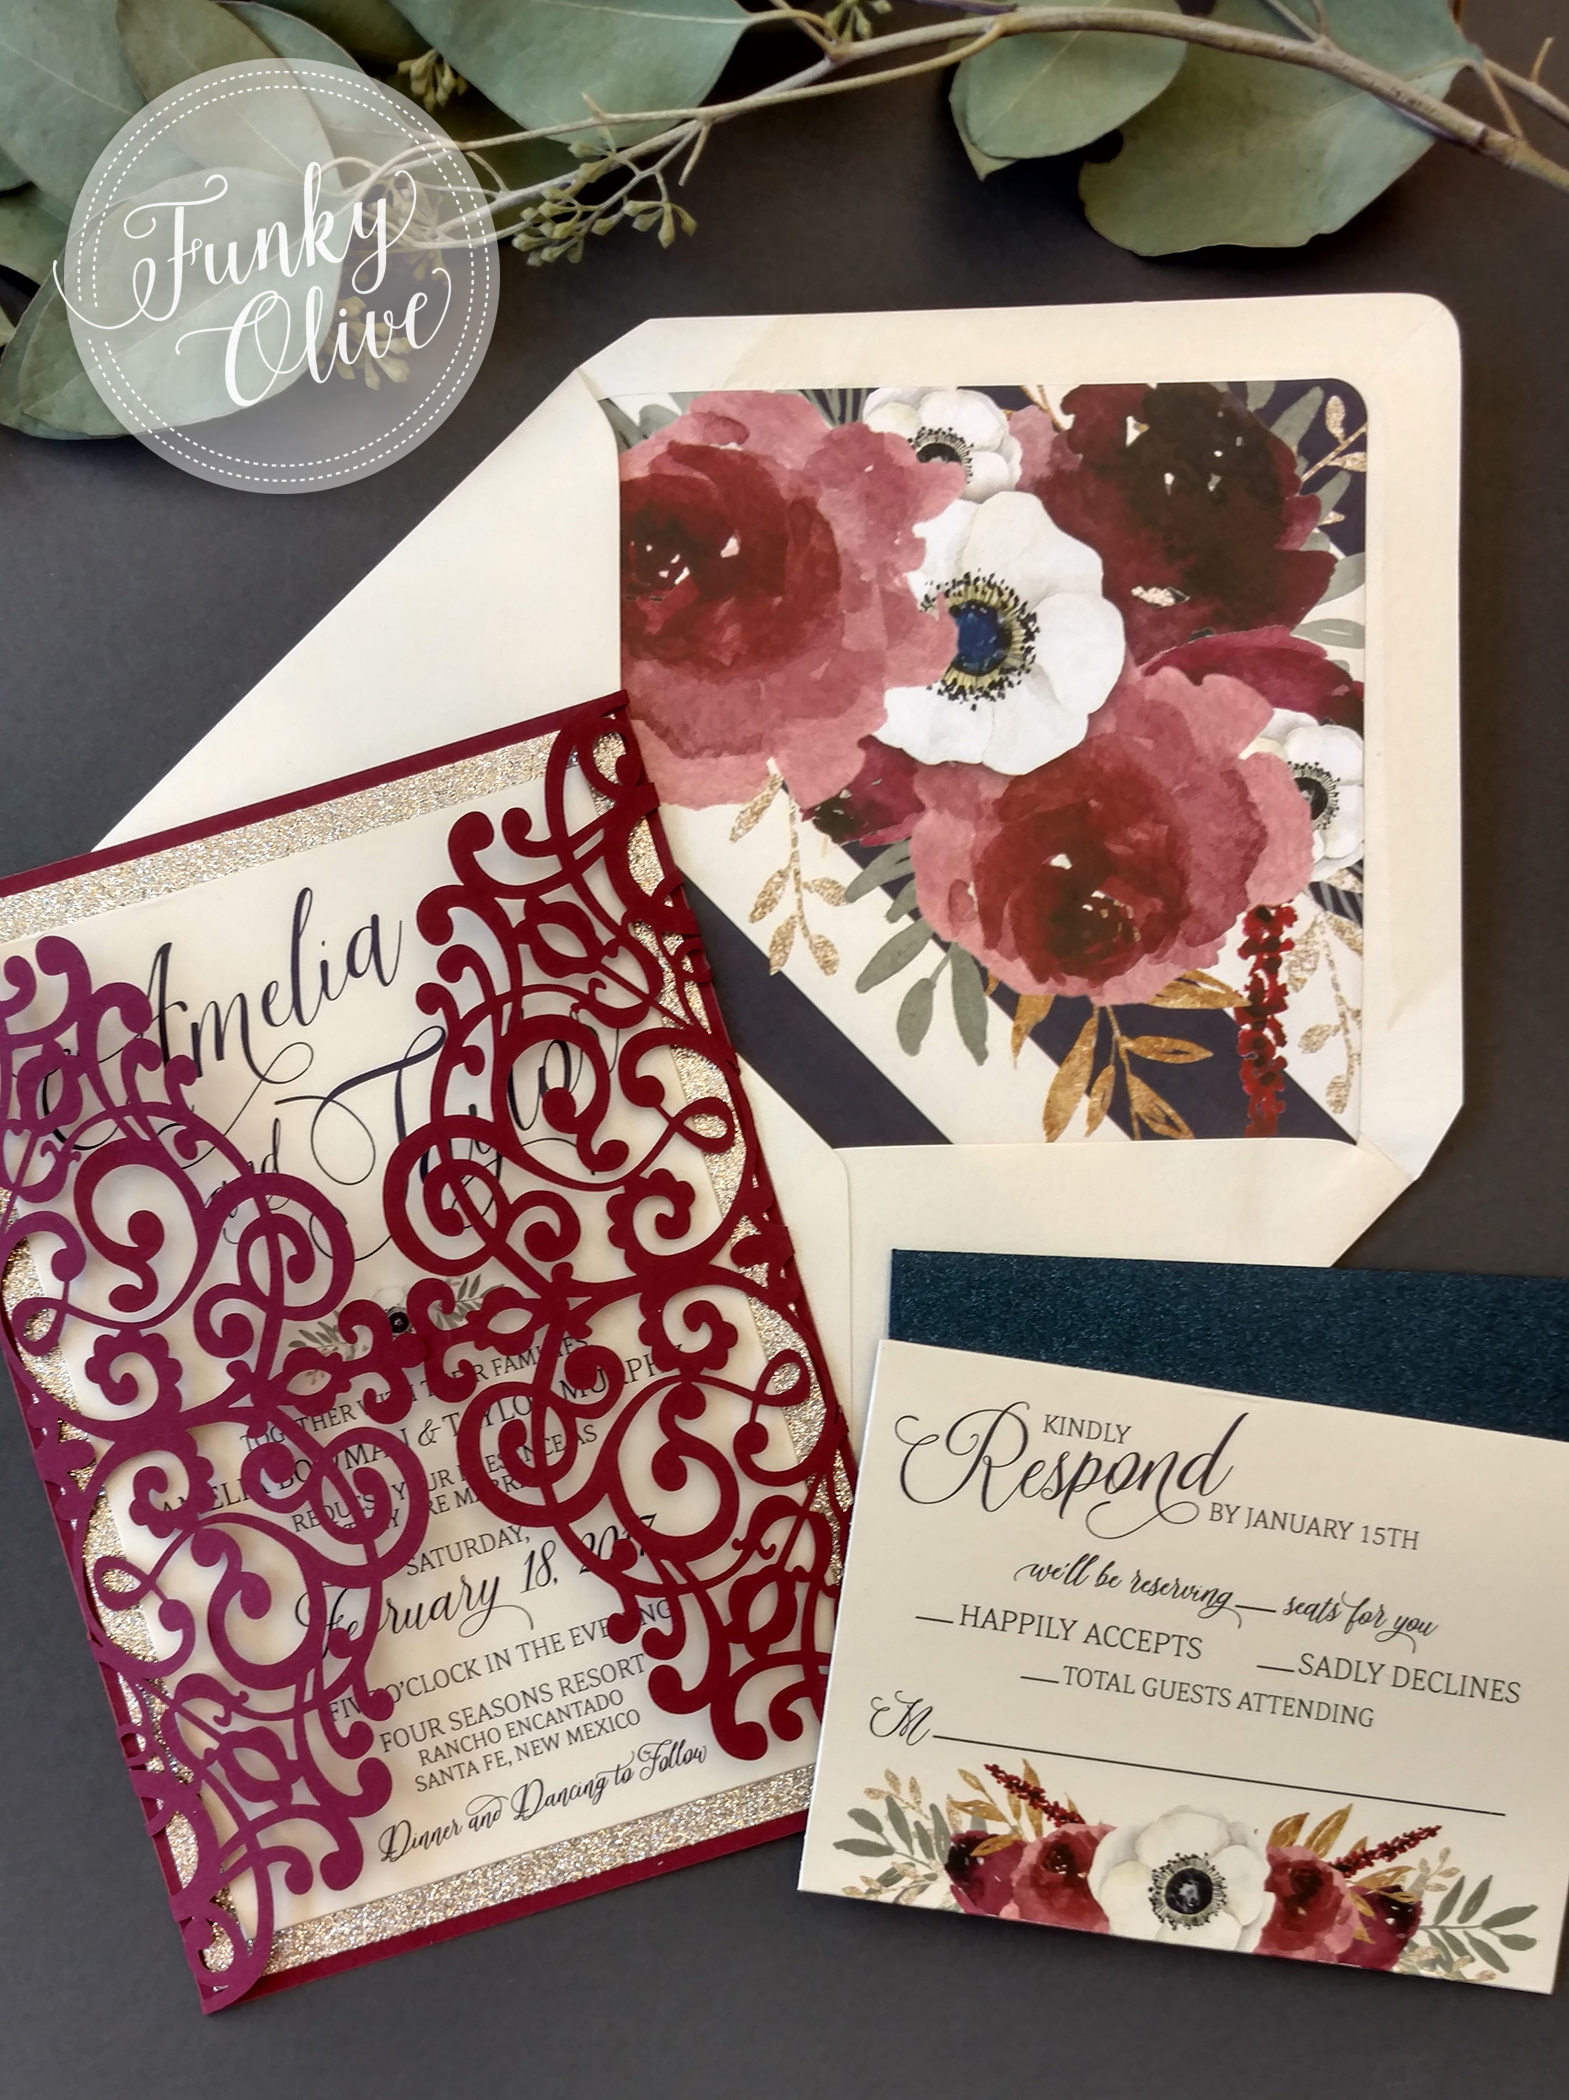 Our best seller for 2017 was this gorgeous liner featuring a bold palette of burgundy, navy and gold, with watercolor flowers and navy stripes.